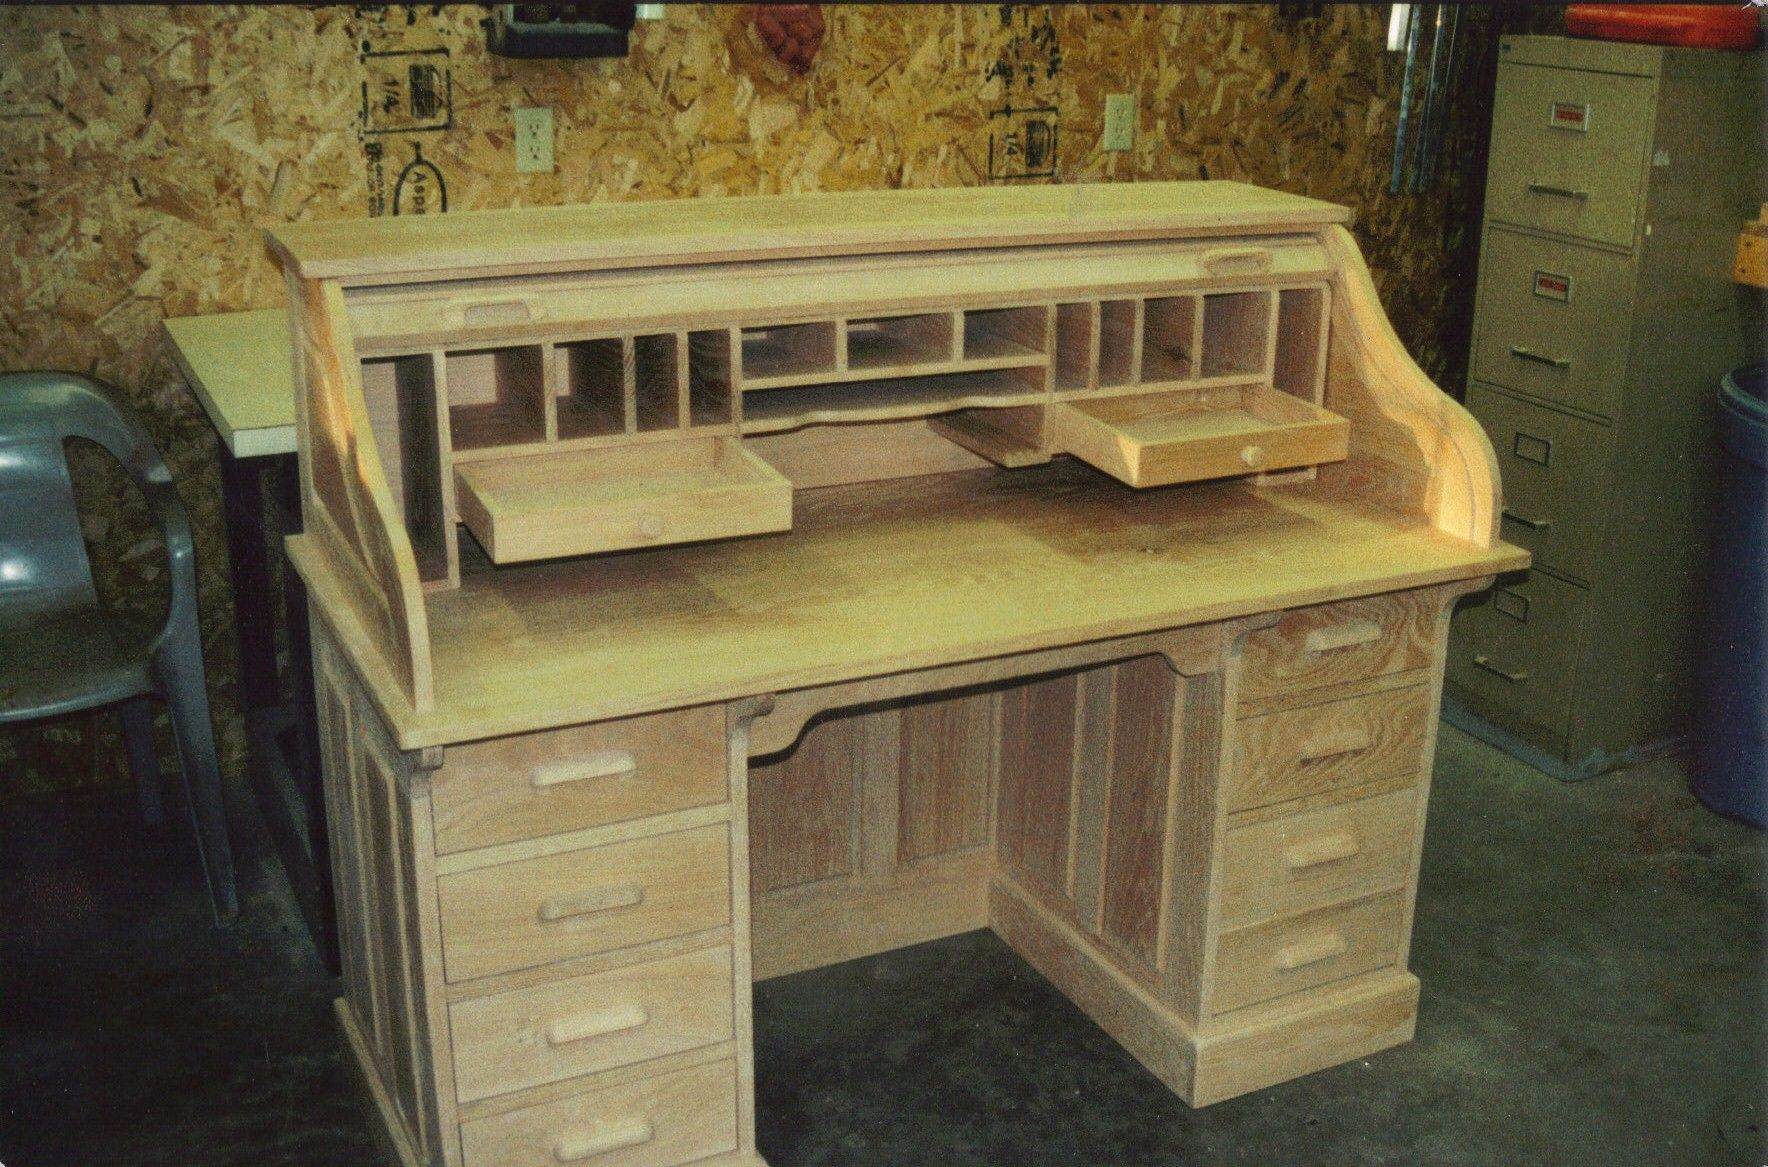 Plans To Build Roll Top Desk Plans Free Pdf Download Roll Top Desk Plans Free Desk Plans Roll Top Desk Woodworking Furniture Plans